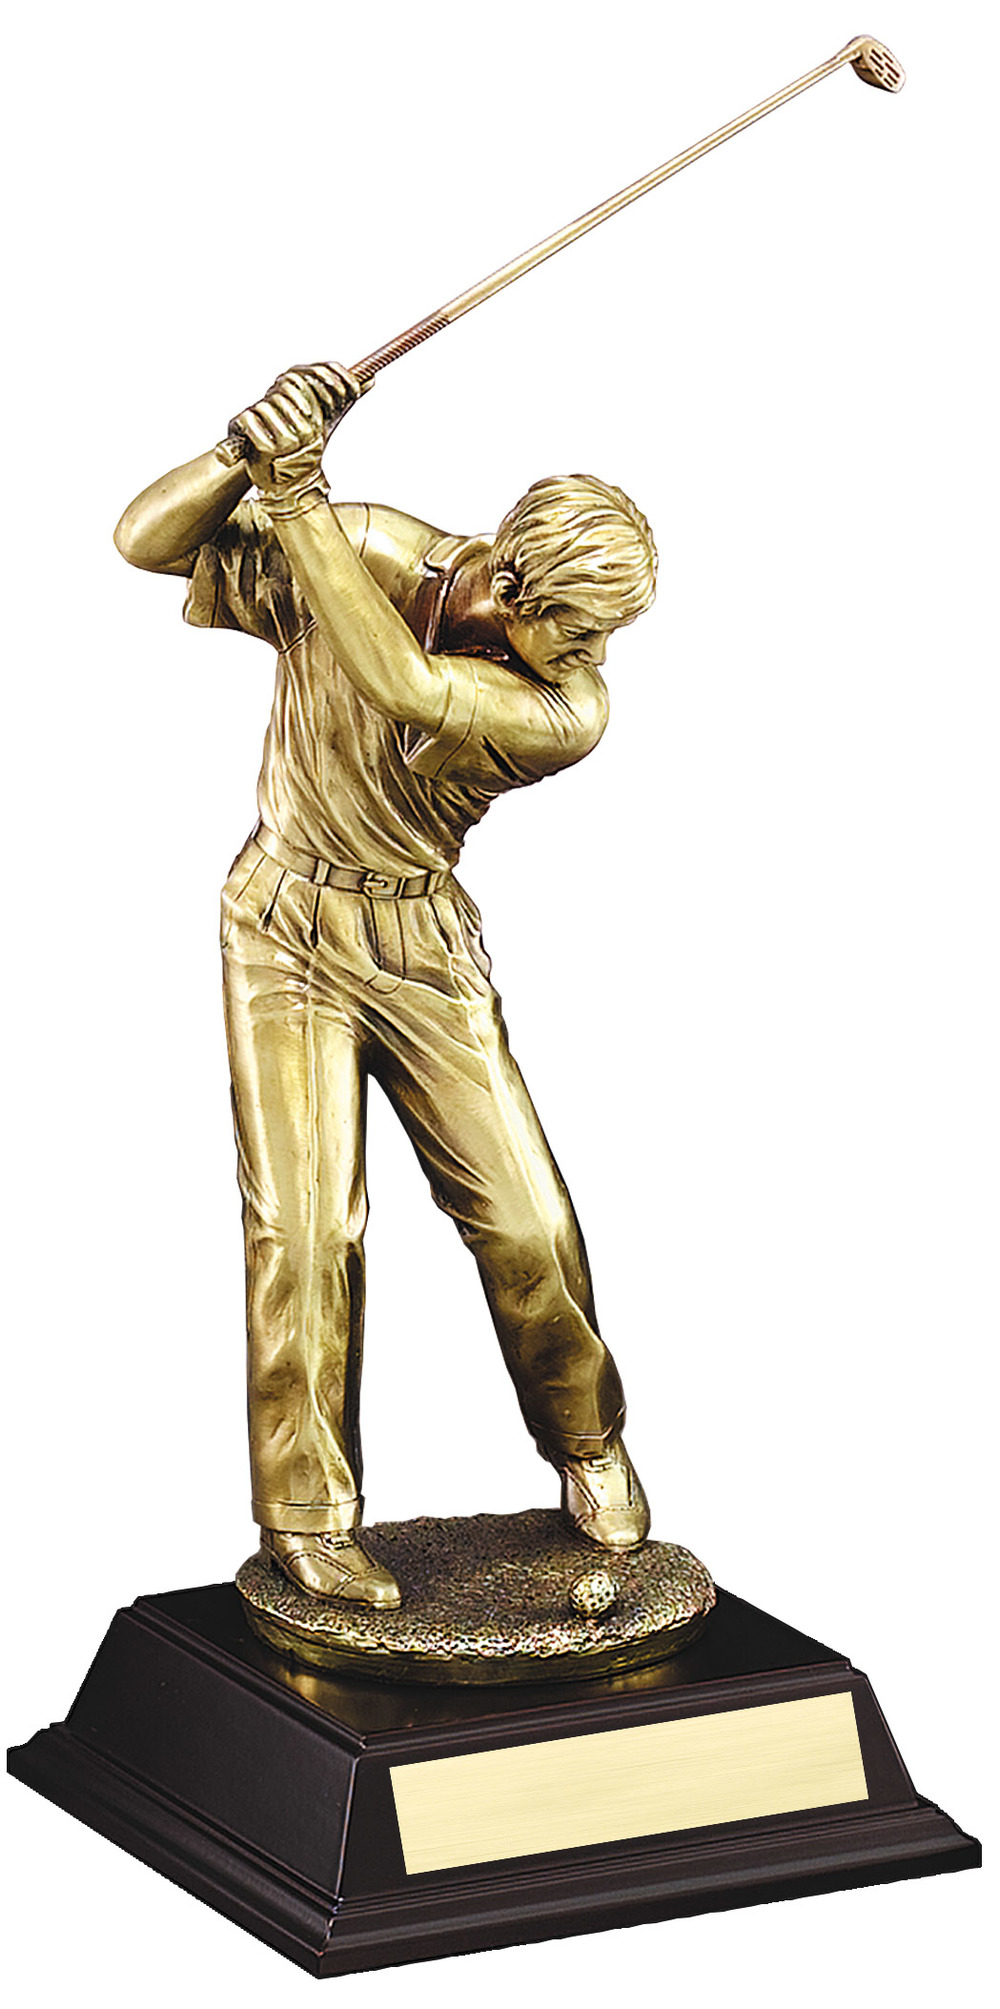 "Gold Metallic Resin - Driver, Male: X-Large: G2684 - 20"" tall - $82 Large: G2683 - 16.5"" tall - $69 Medium: G2682 - 13"" tall - $56 Small: G2681 - 10"" tall - $41"